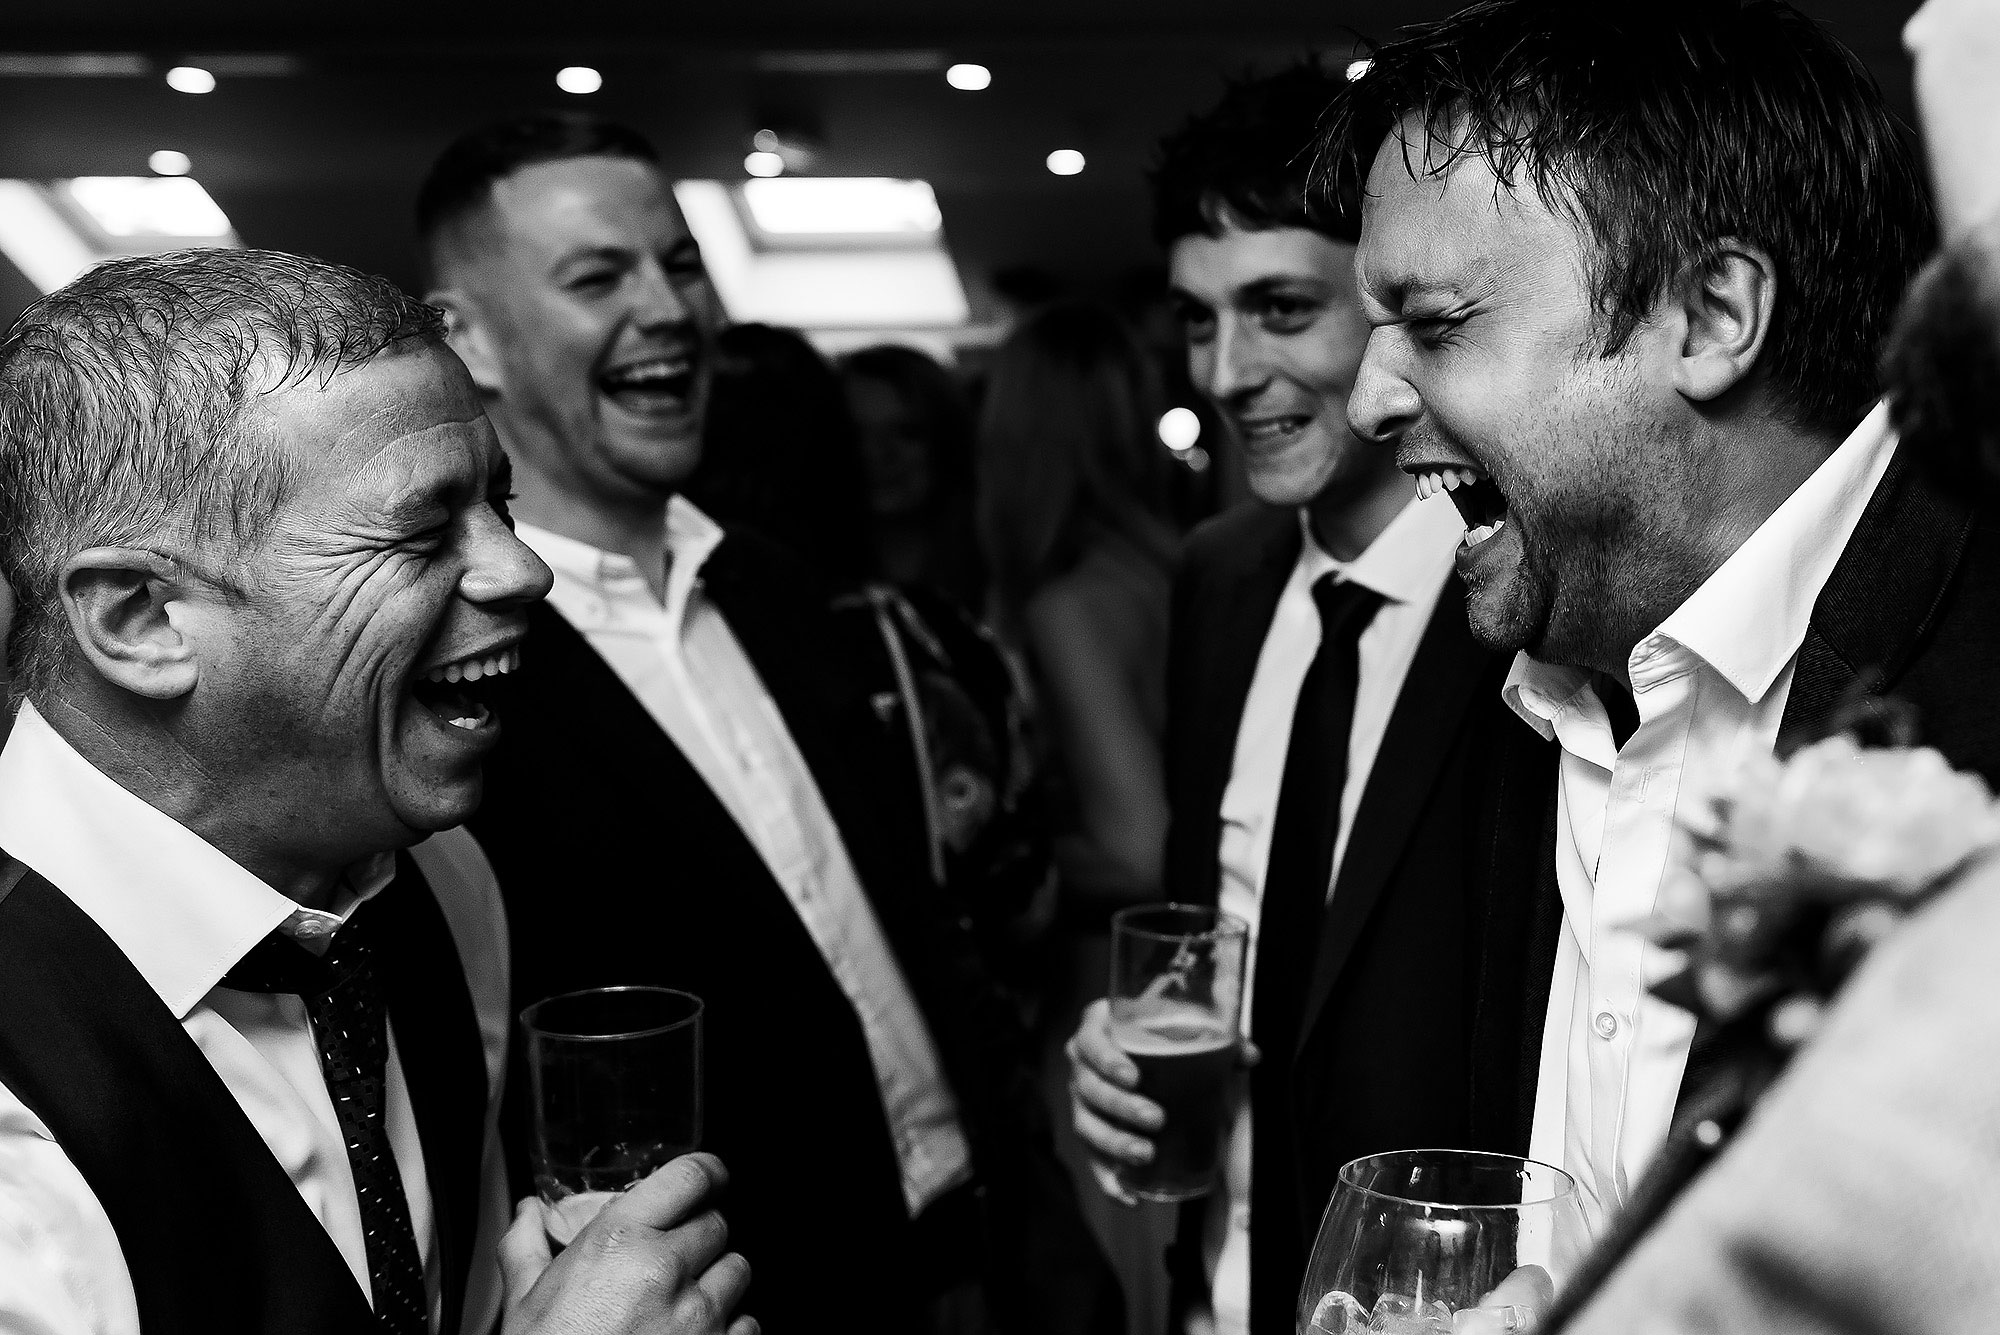 Wedding guests laughing enjoying the drinks reception at Wellbeing Farm | Wellbeing Farm wedding photographs by Toni Darcy Photography